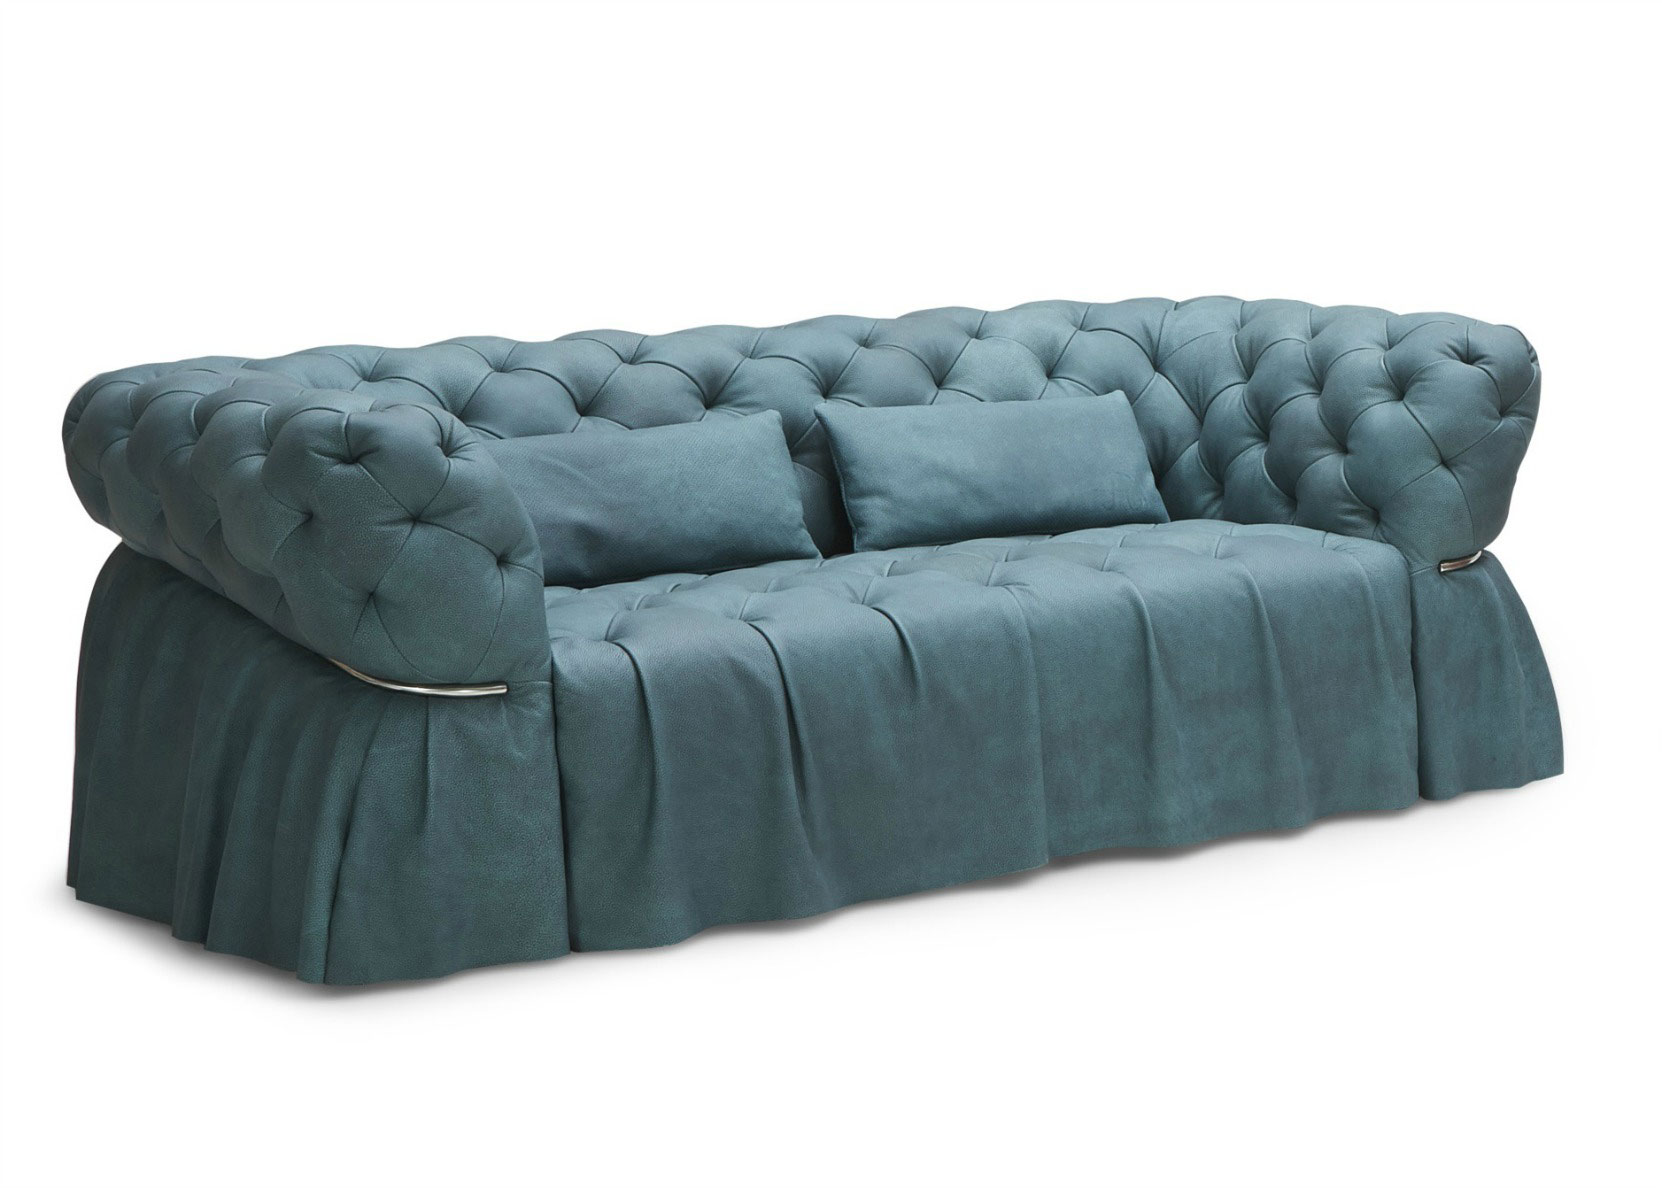 Chesterfield Sofa In A Neo Classic Look Not Just Brown